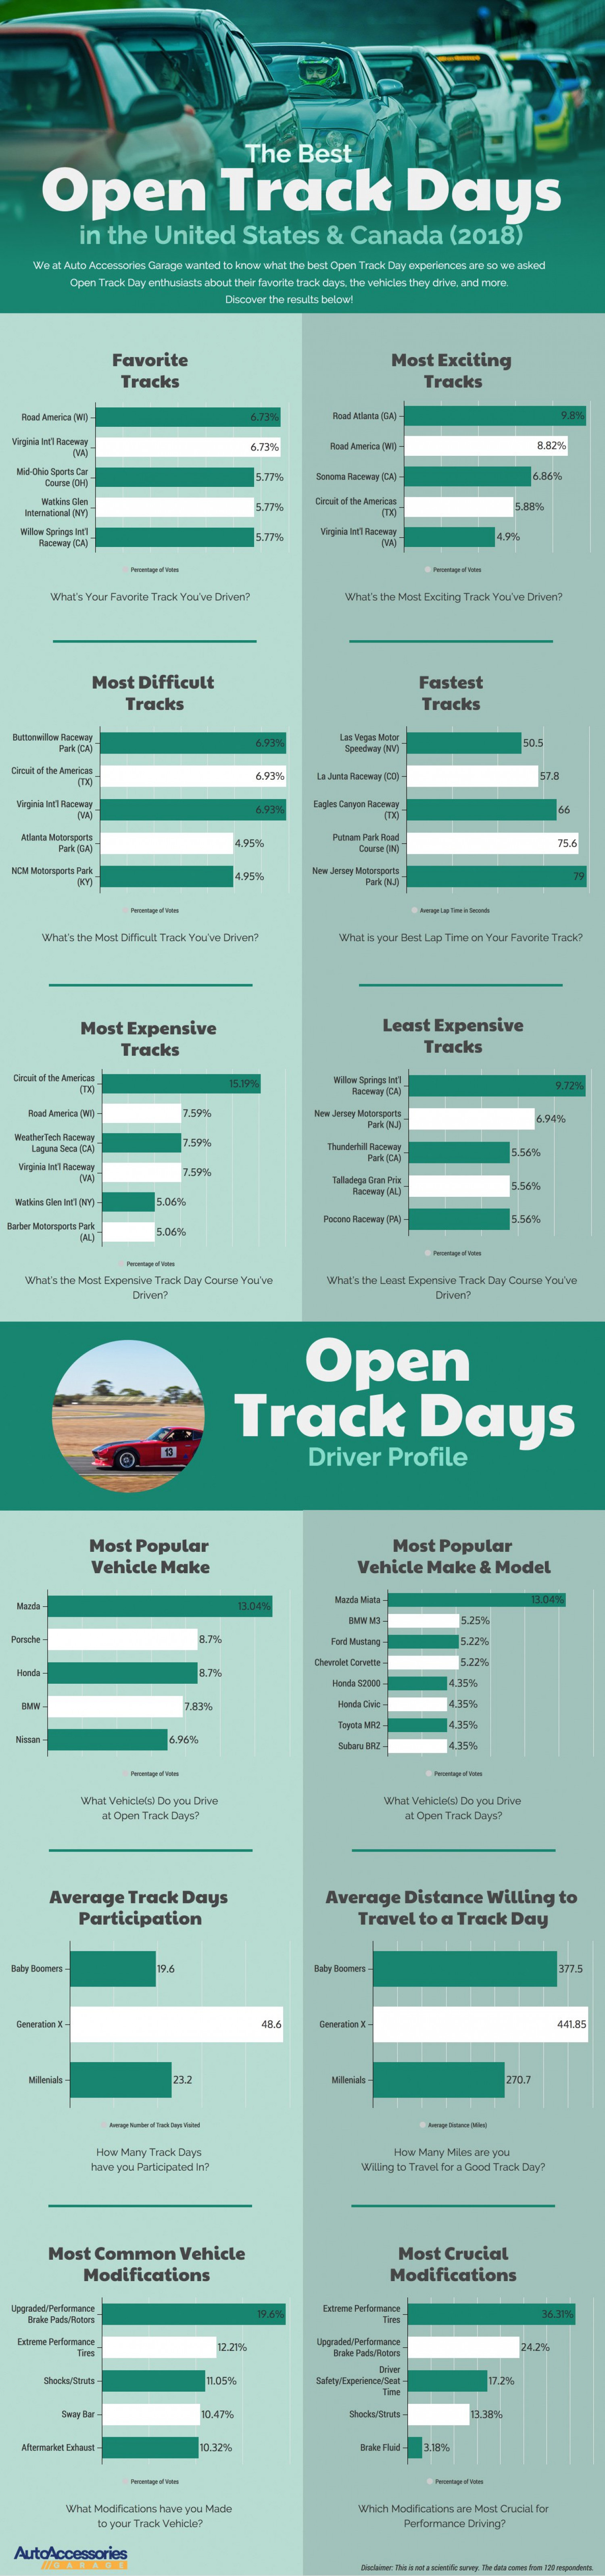 The Best Open Track Days in the United States & Canada [2018] Infographic